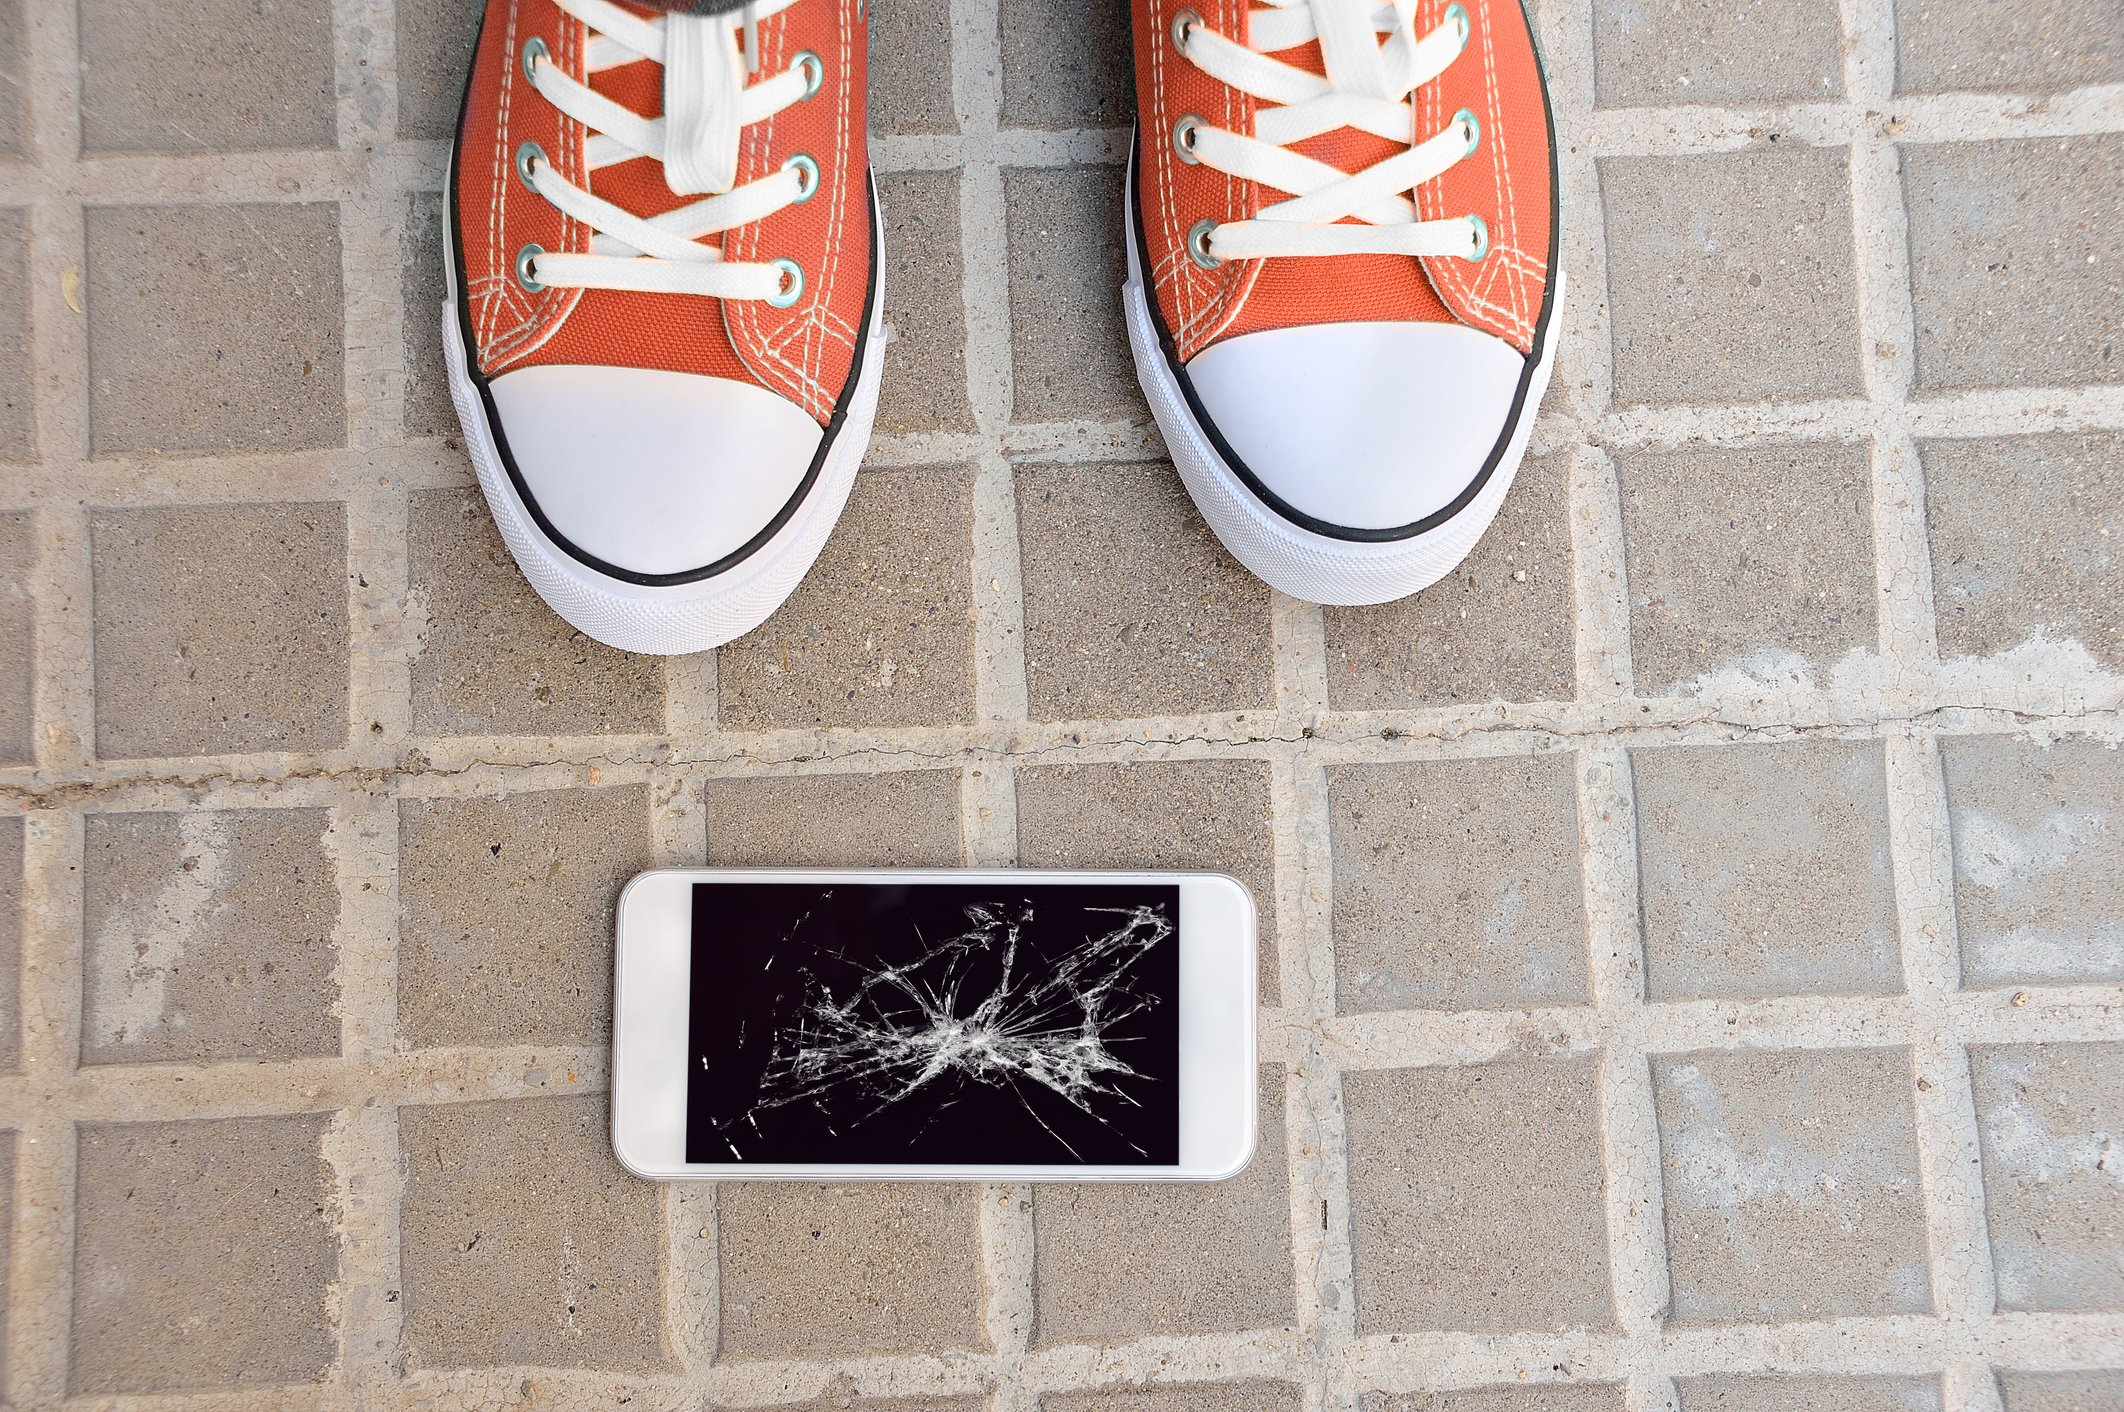 Someone standing next to a dropped cell phone with a broken screen.